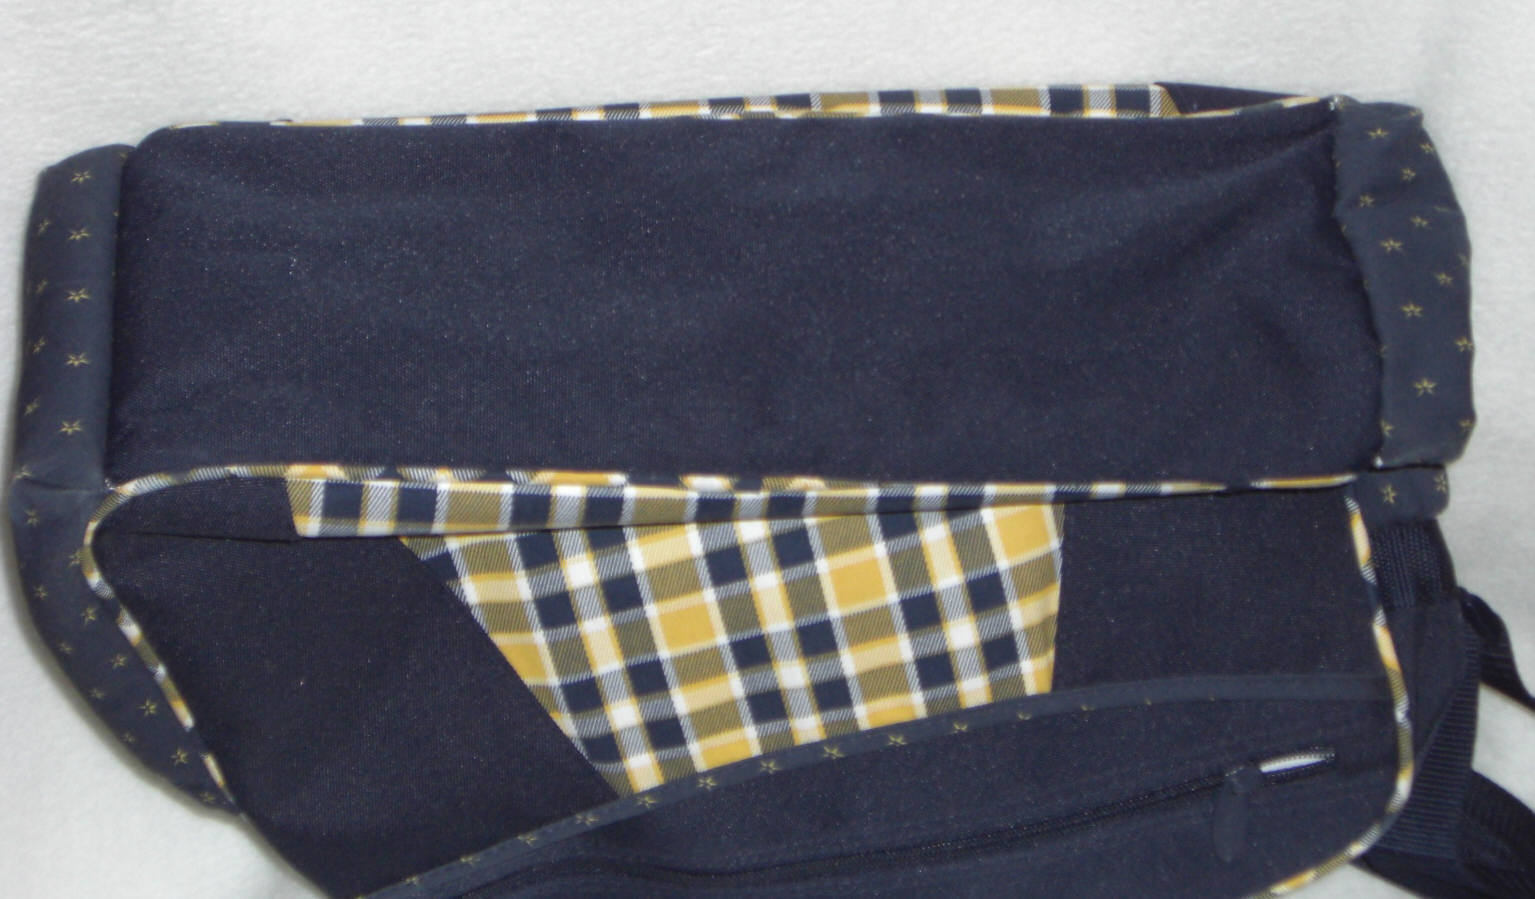 Graco Diaper Bag 16x12 Navy Blue with yellow plaid design Preowned